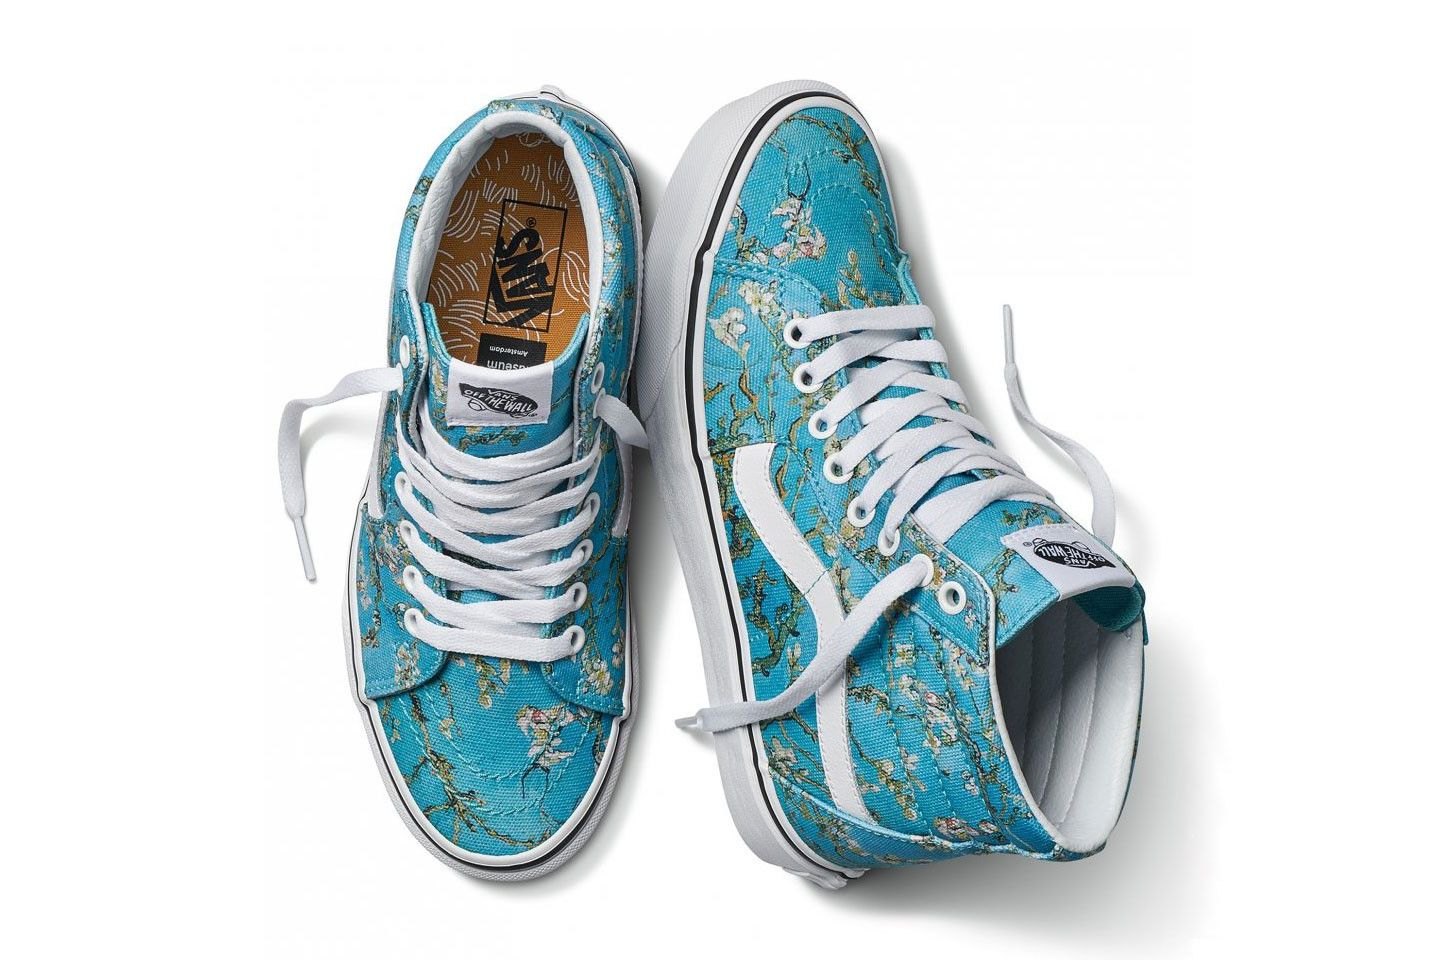 vincent van gogh museum vans collaboration artwork sneaker shoe sk8 hi blue  white almond blossom flower c9b86fccf5b